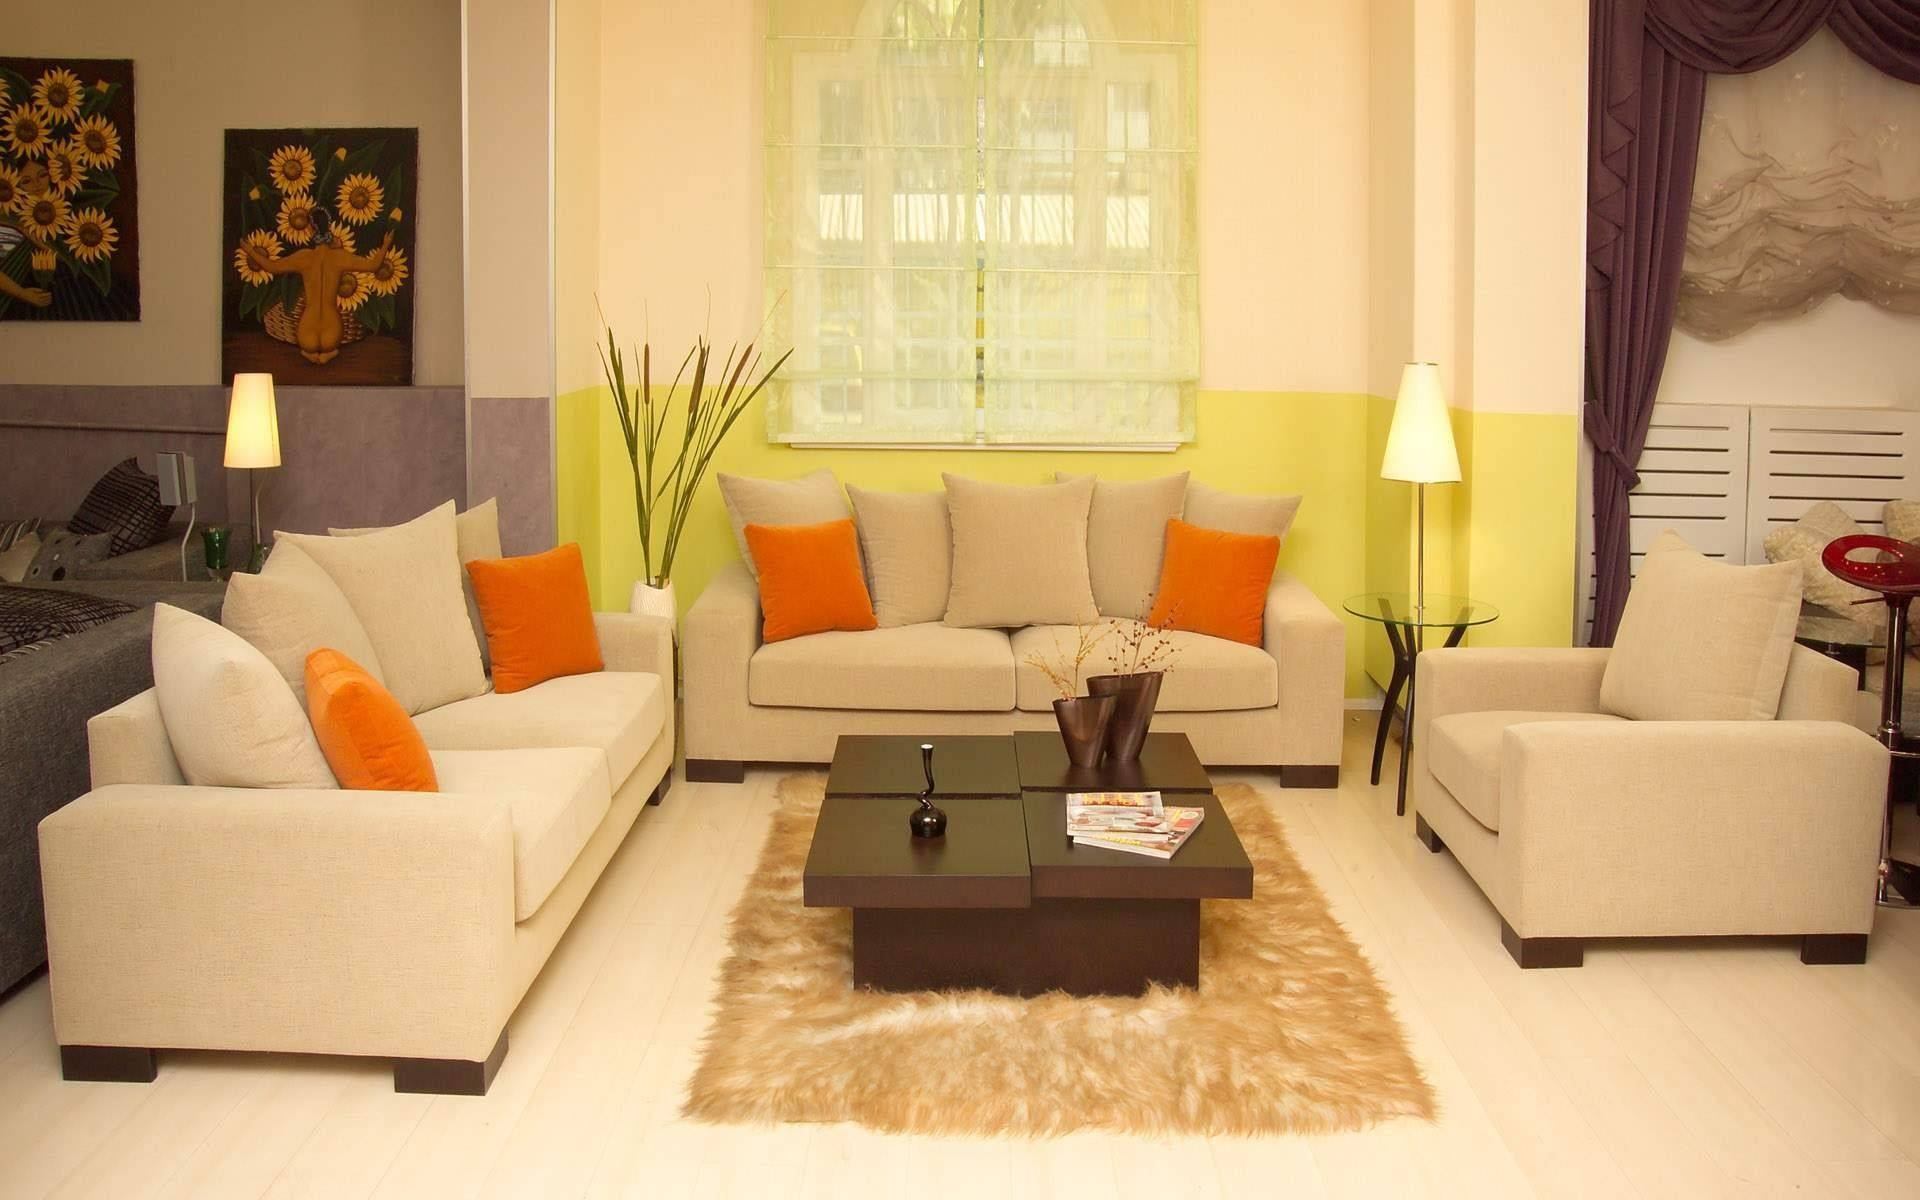 Cream Fabric Sofa With Orange Cushion Addeddark Brown Wooden for Cream Colored Sofas (Image 12 of 30)